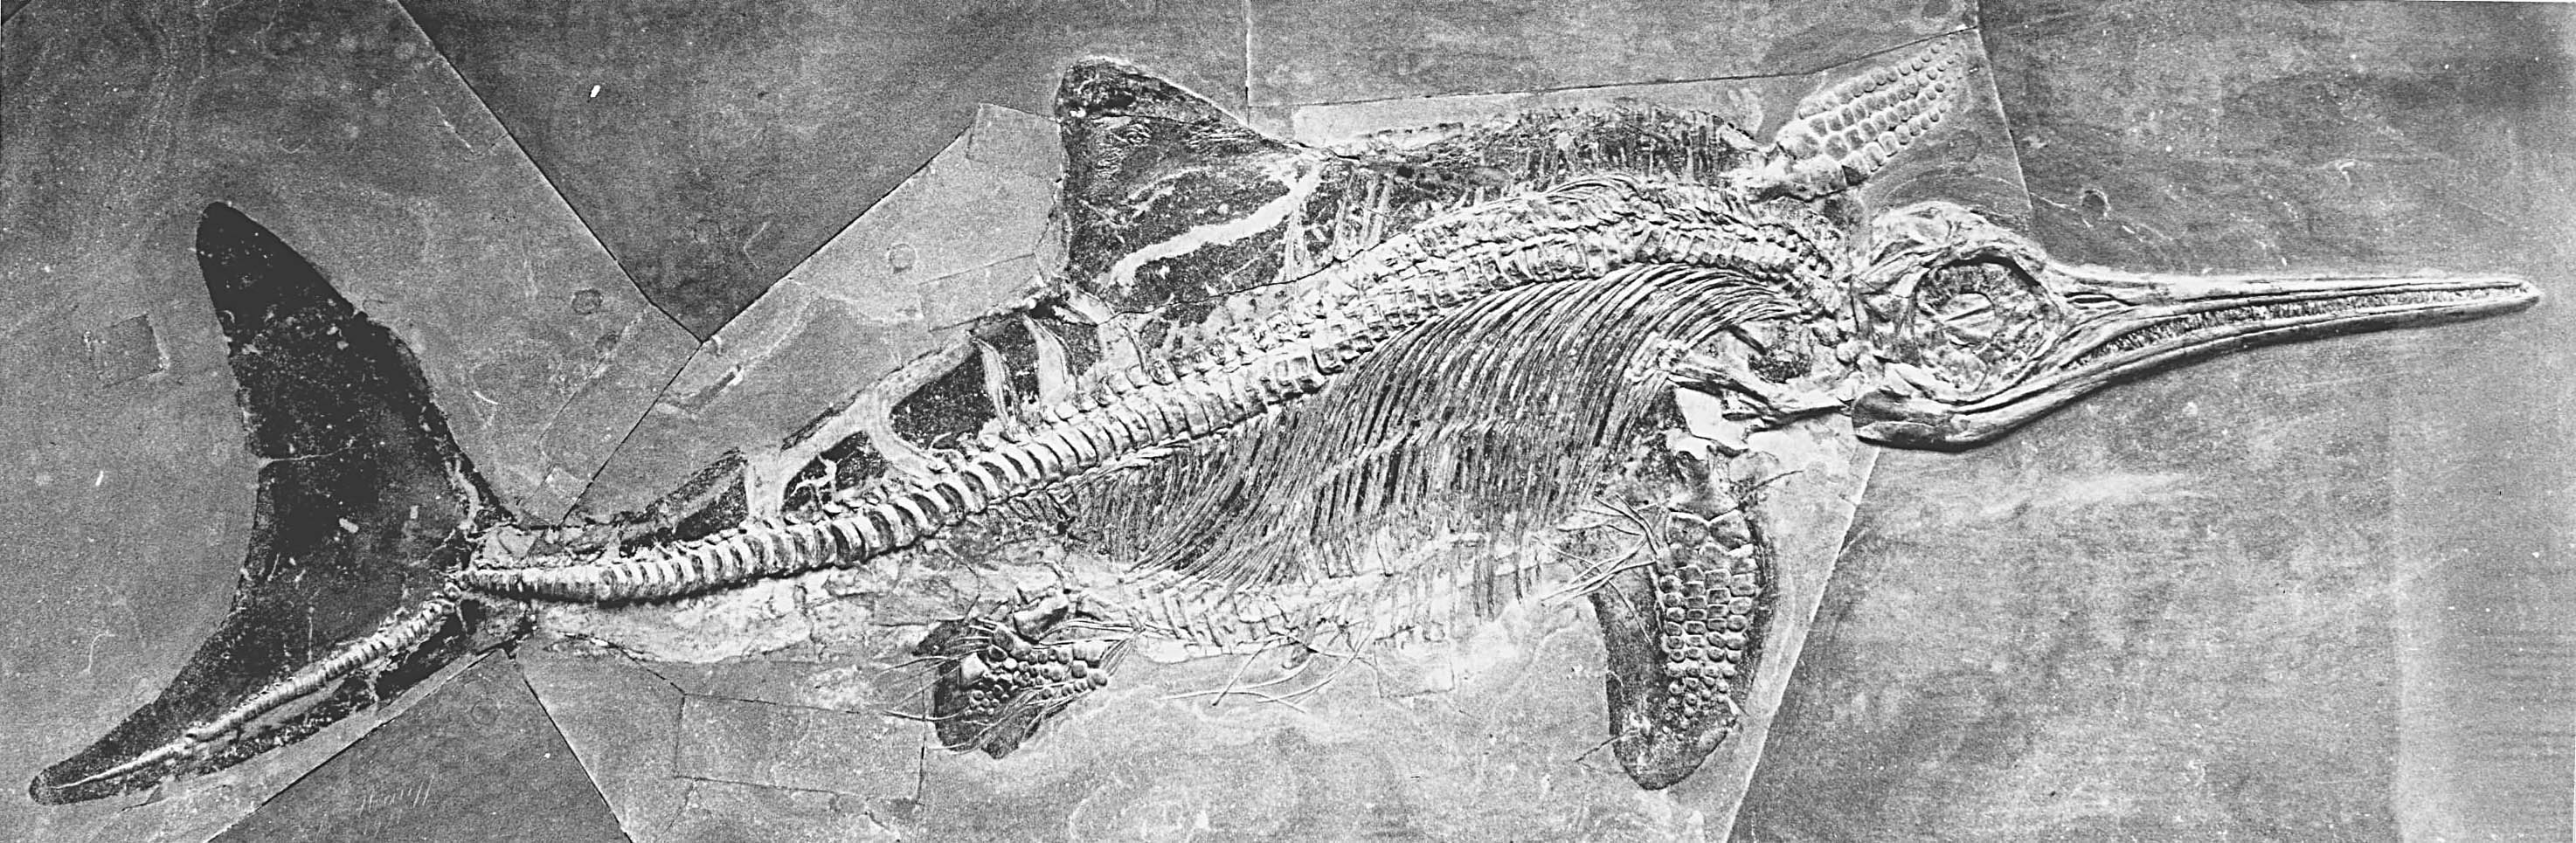 An ichthyosaur with soft tissue preservation